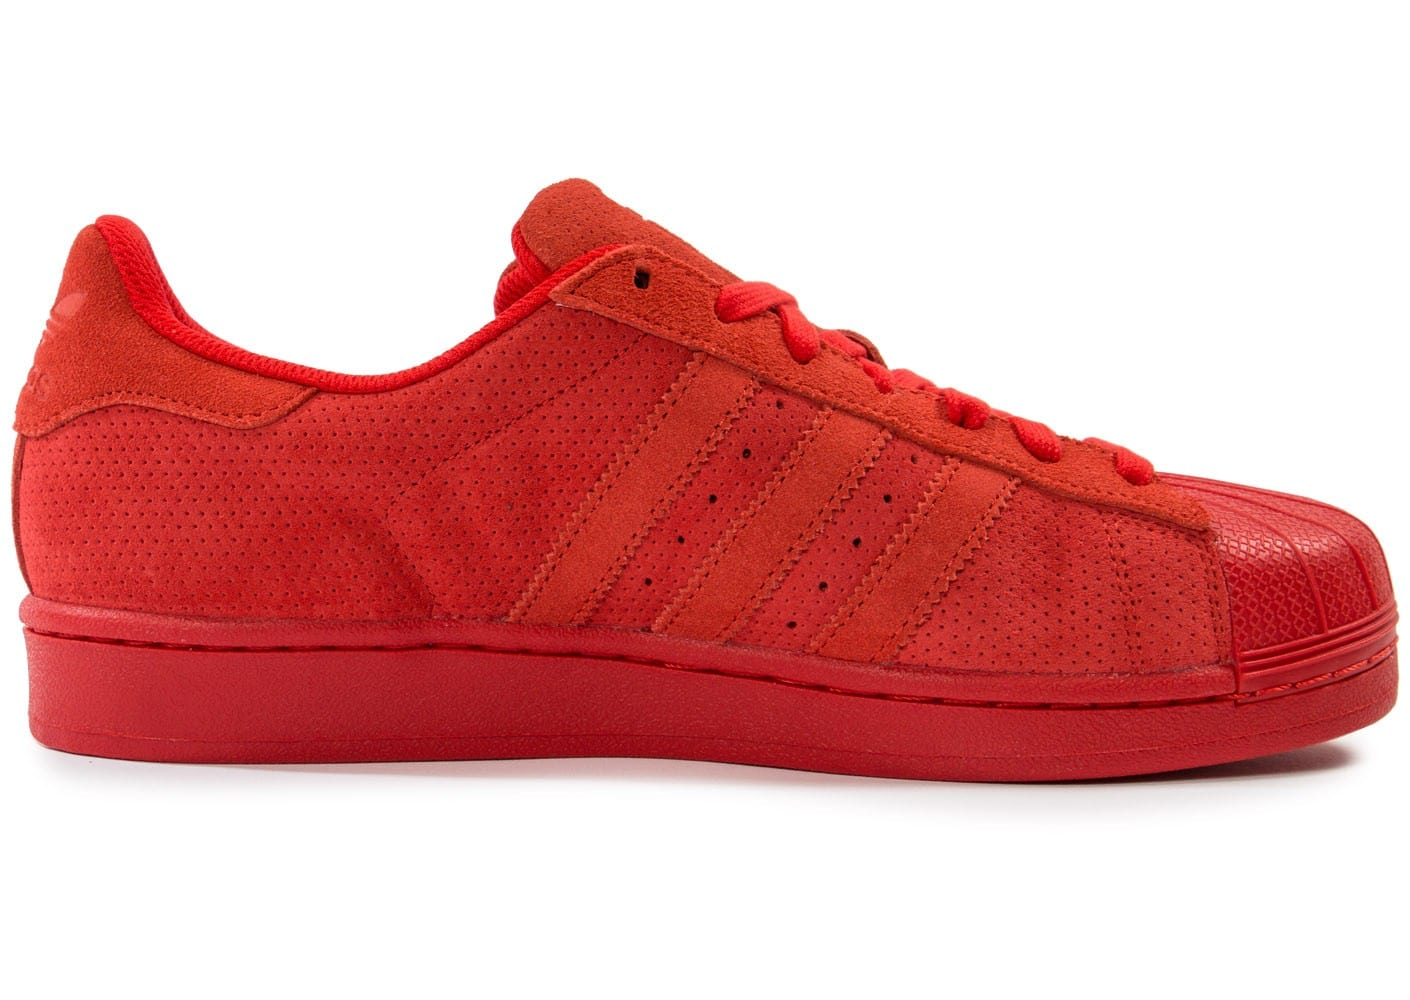 Adidas Campus chaussures rouge